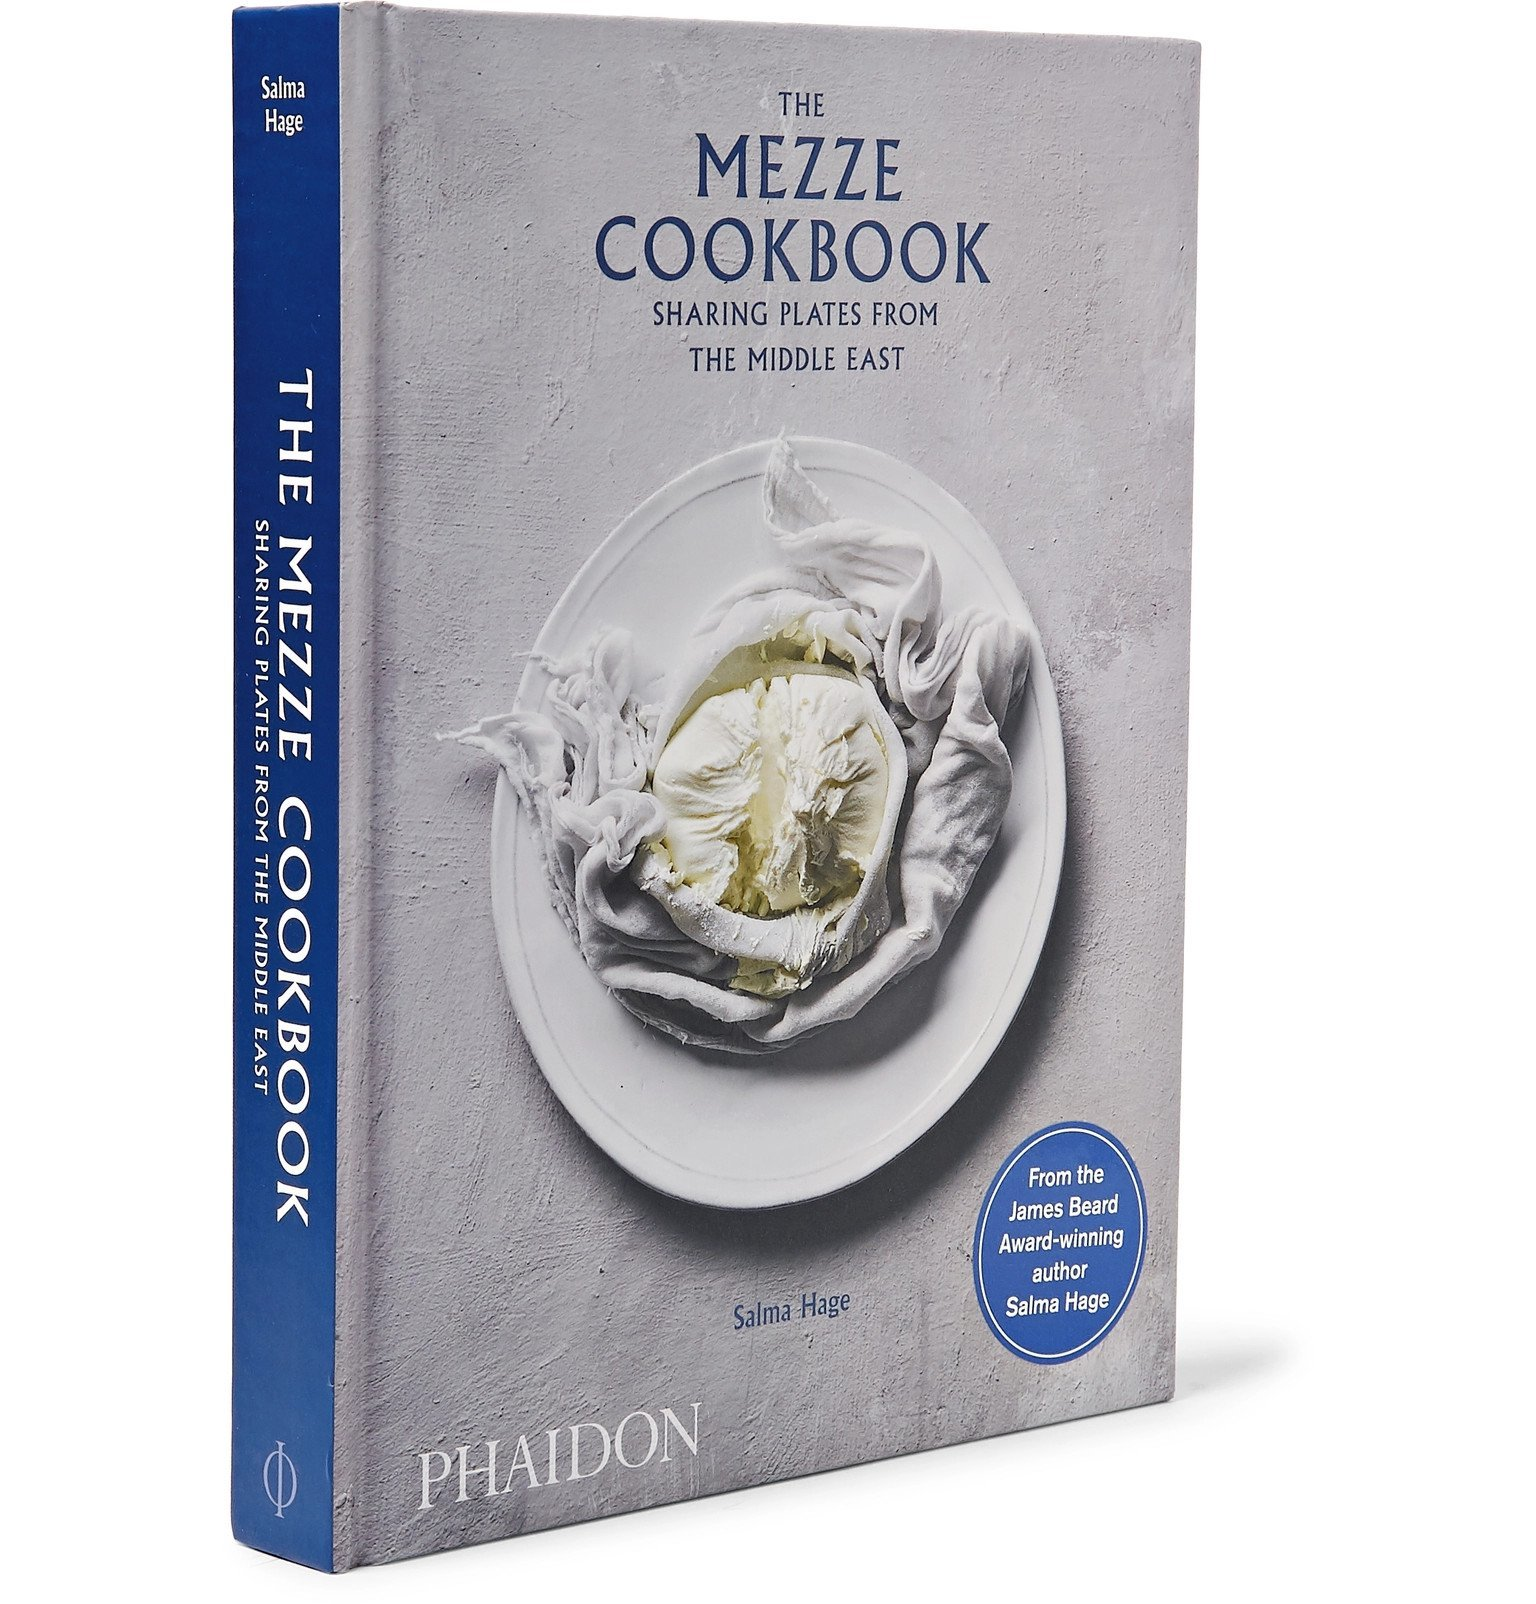 Photo: Phaidon - The Mezze Cookbook Hardcover Book - Blue